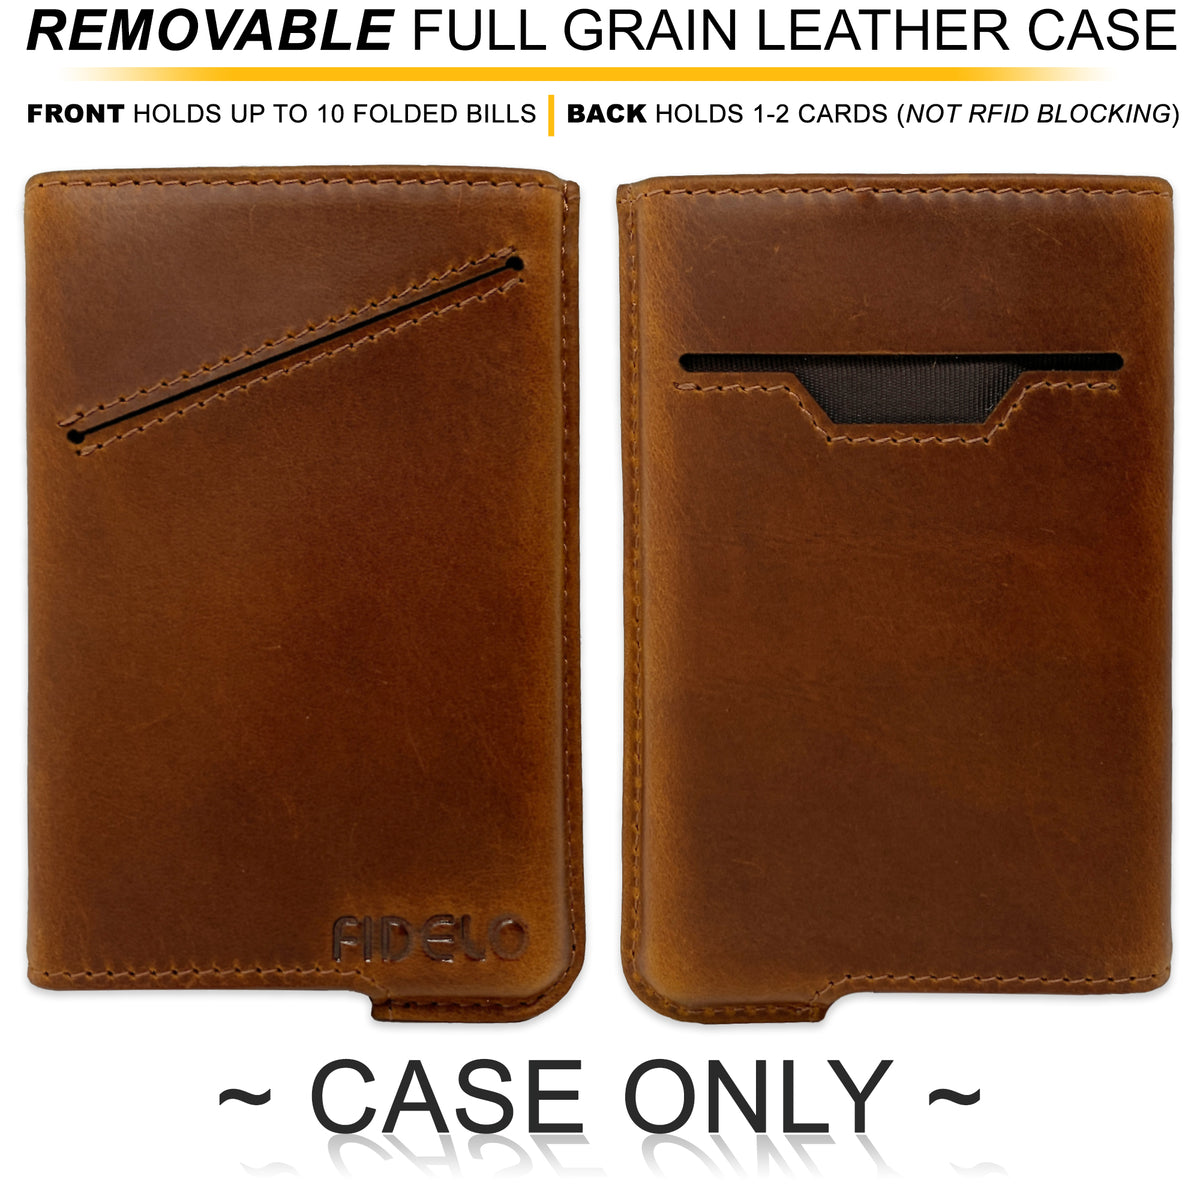 HYBRID CASE ONLY - Chestnut Brown Crazy Horse Leather